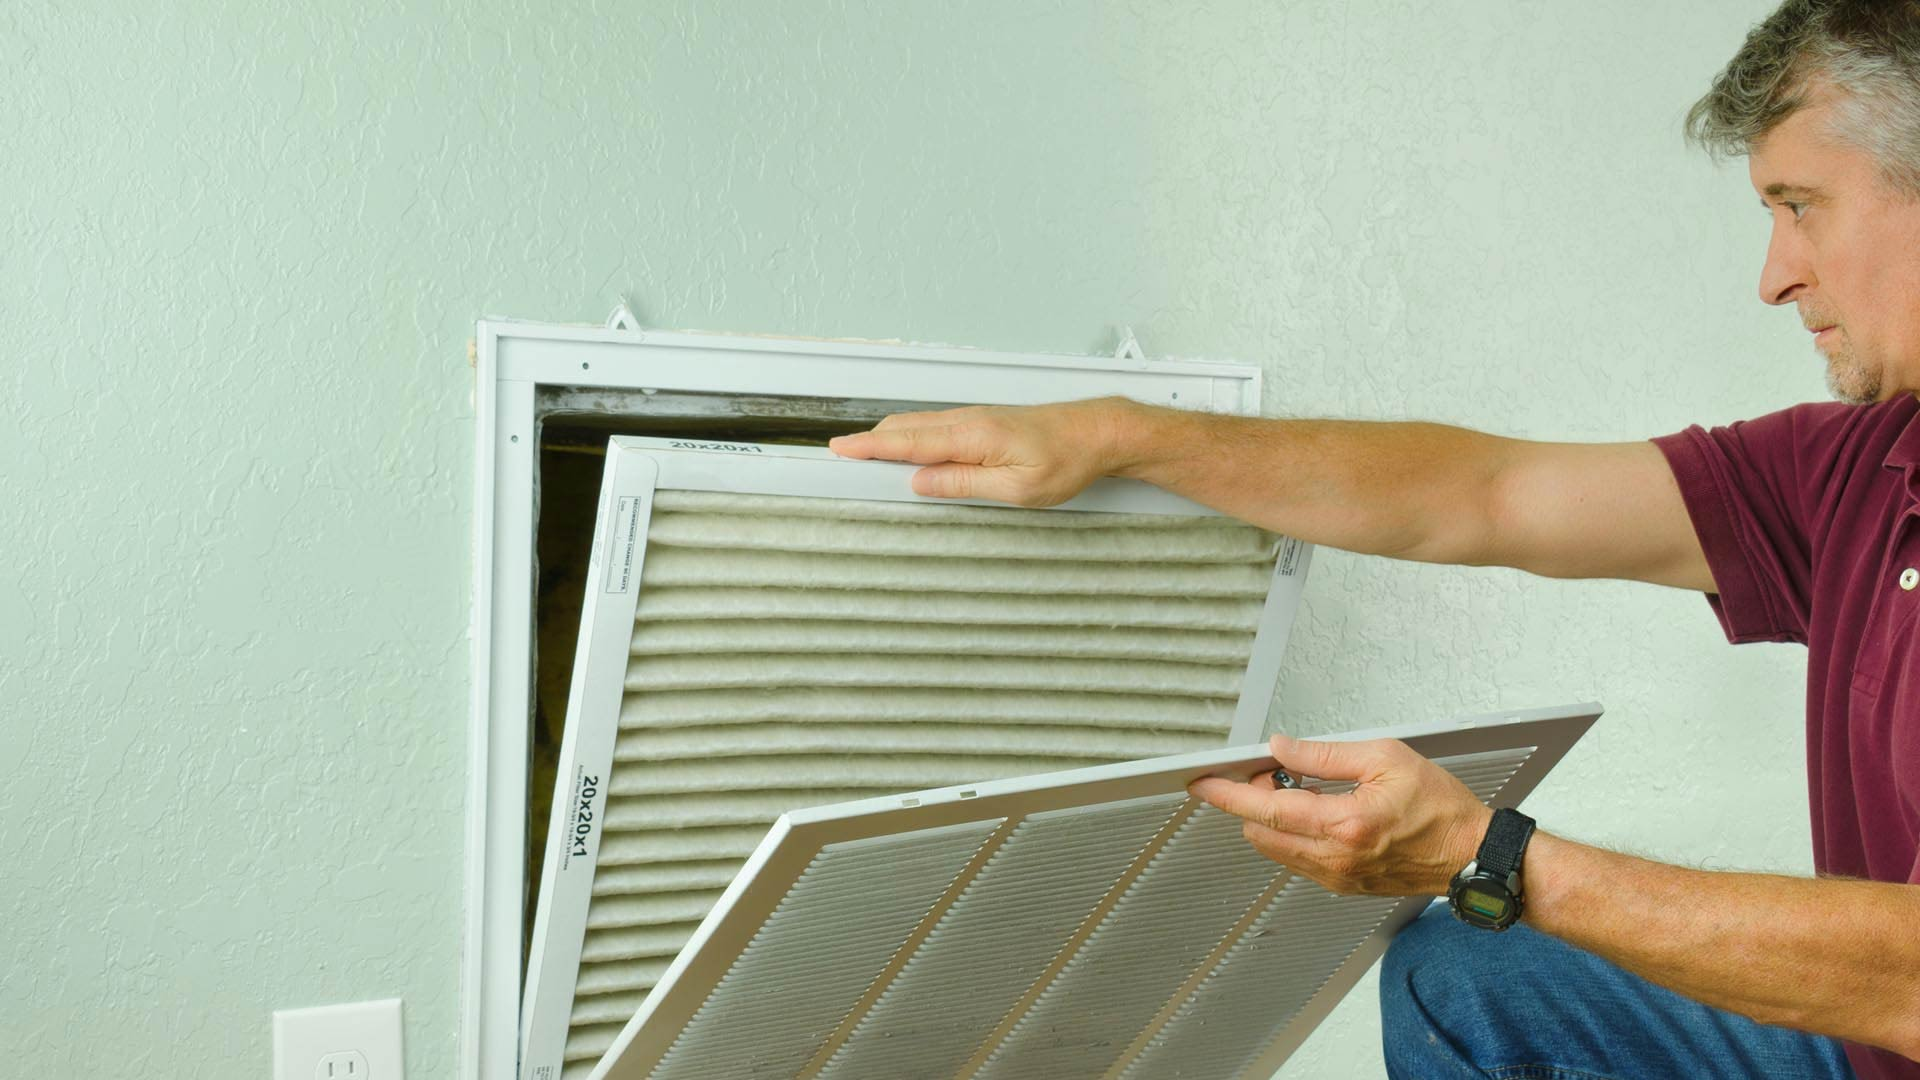 Residential Duct Cleaning Services | S & R Air Duct Cleaning Services